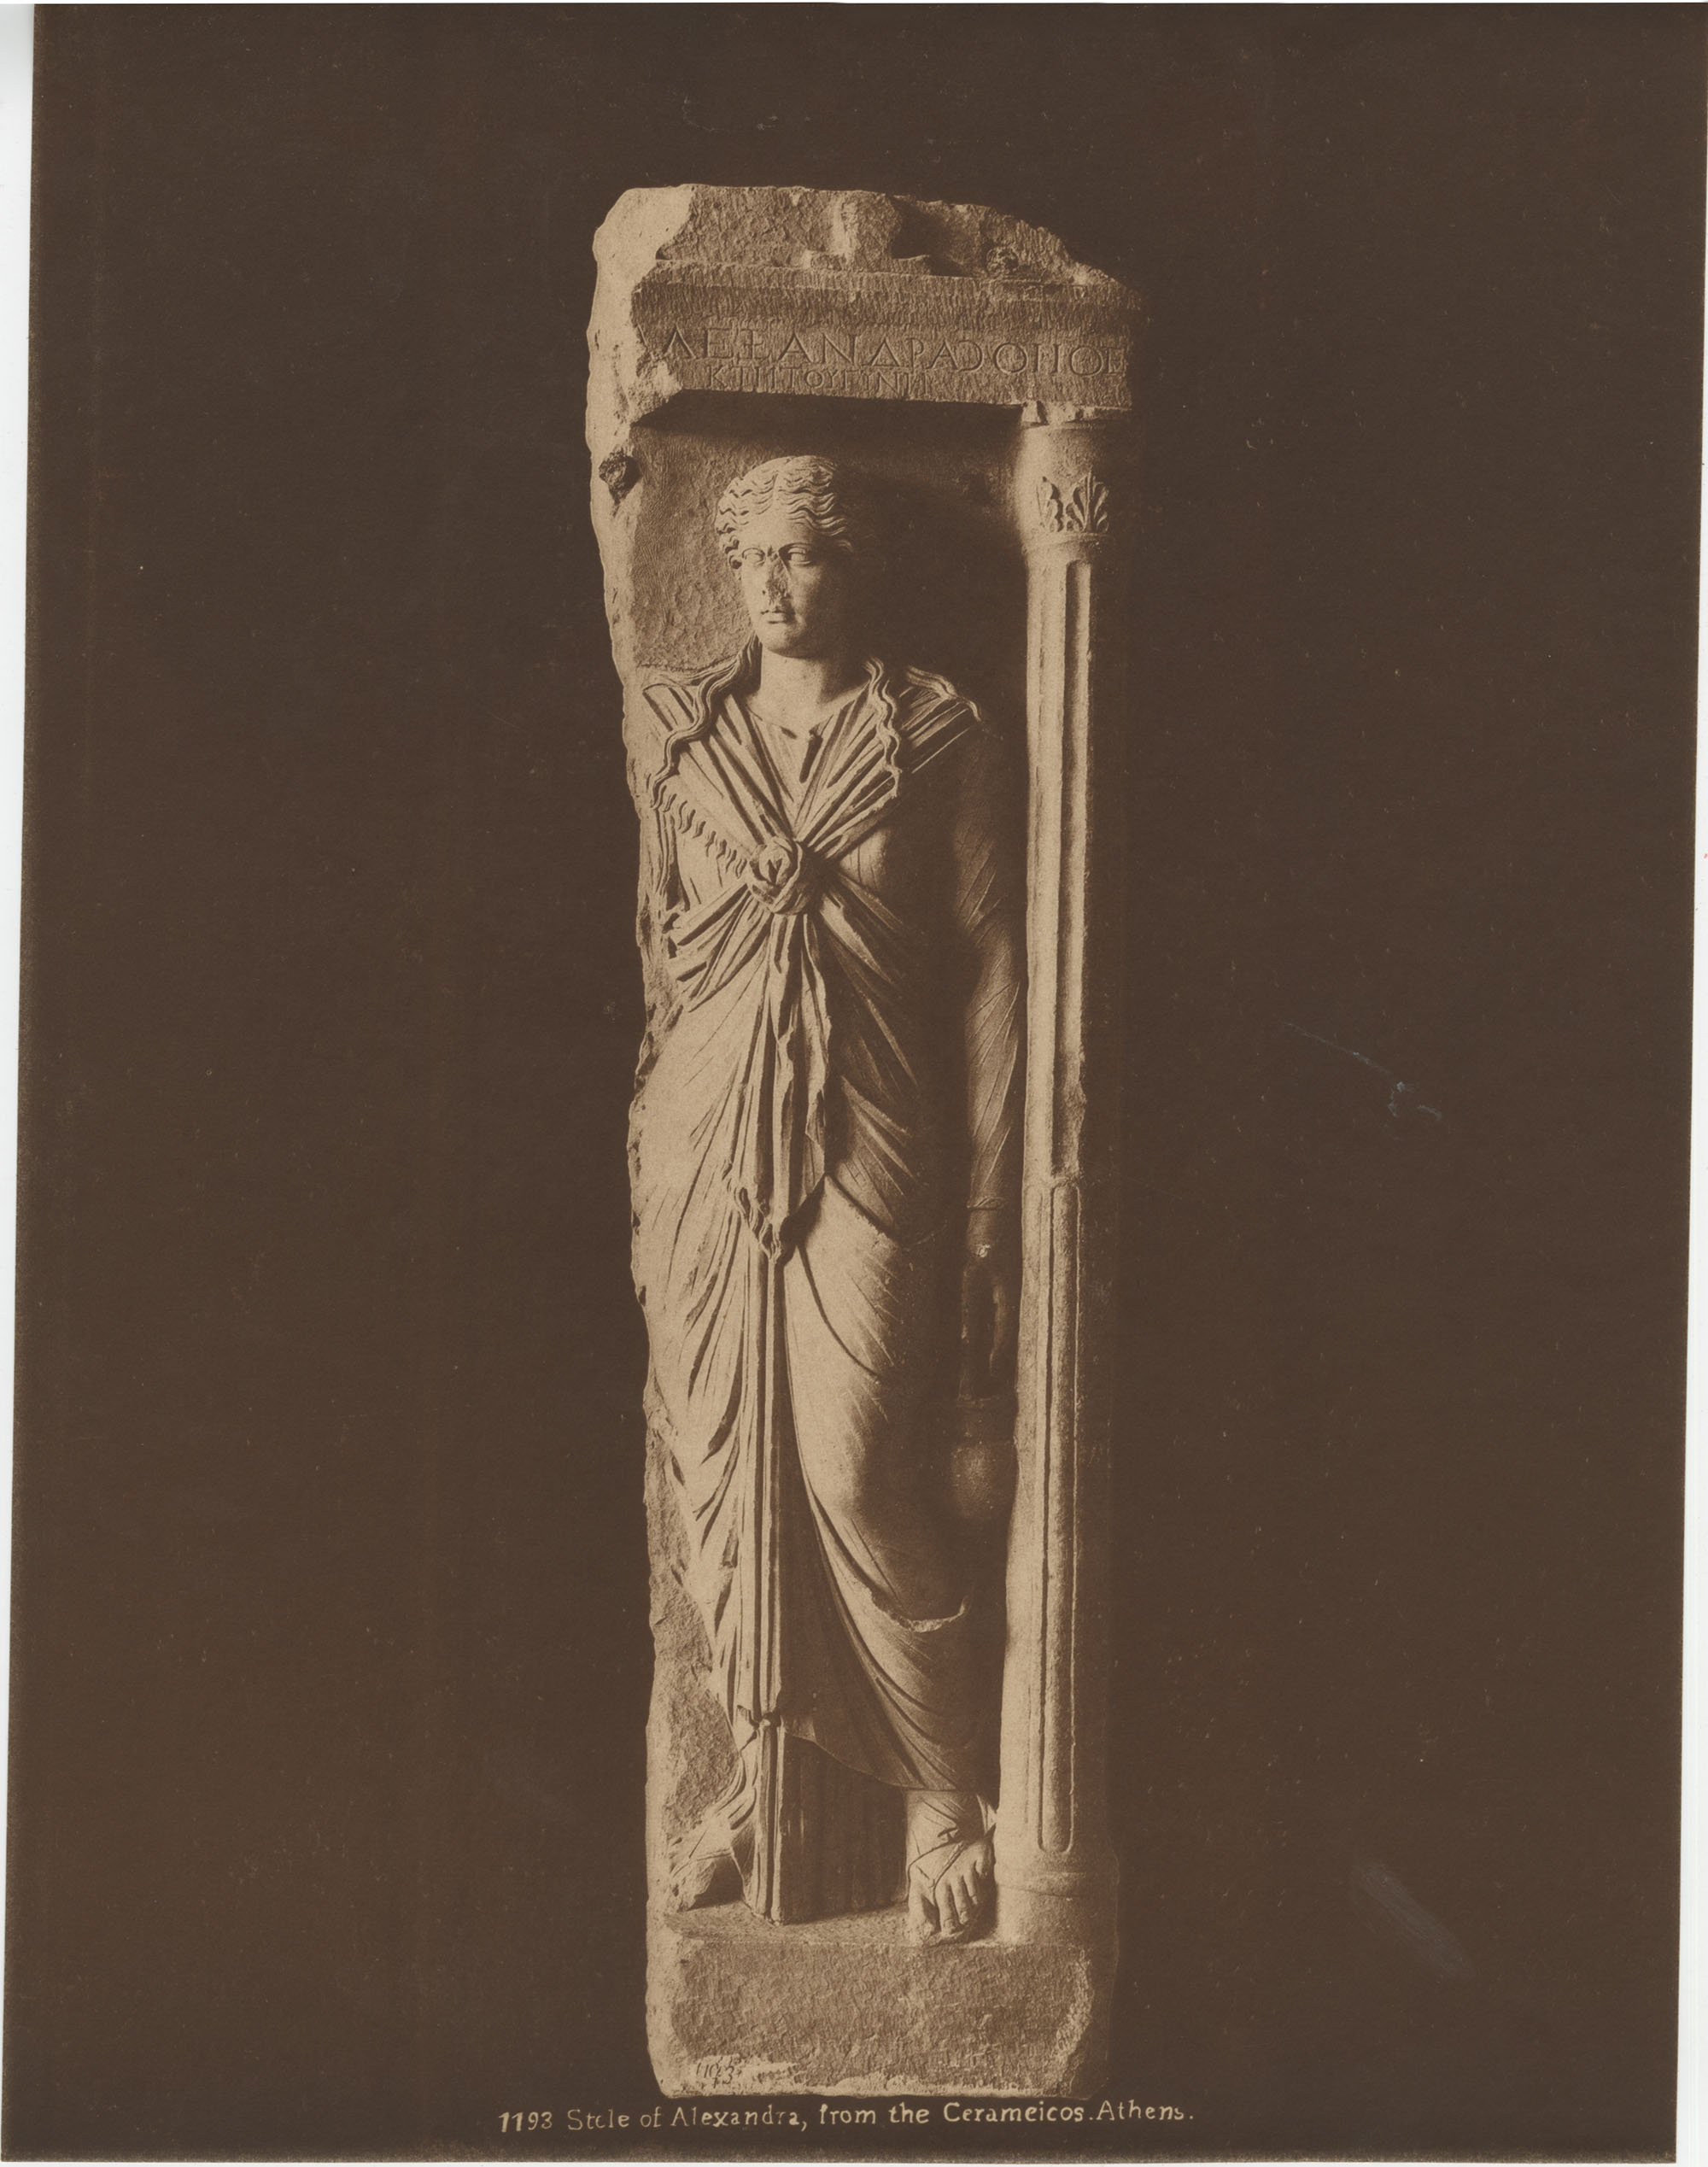 Sculpture from Athens, Greece, Photograph 4